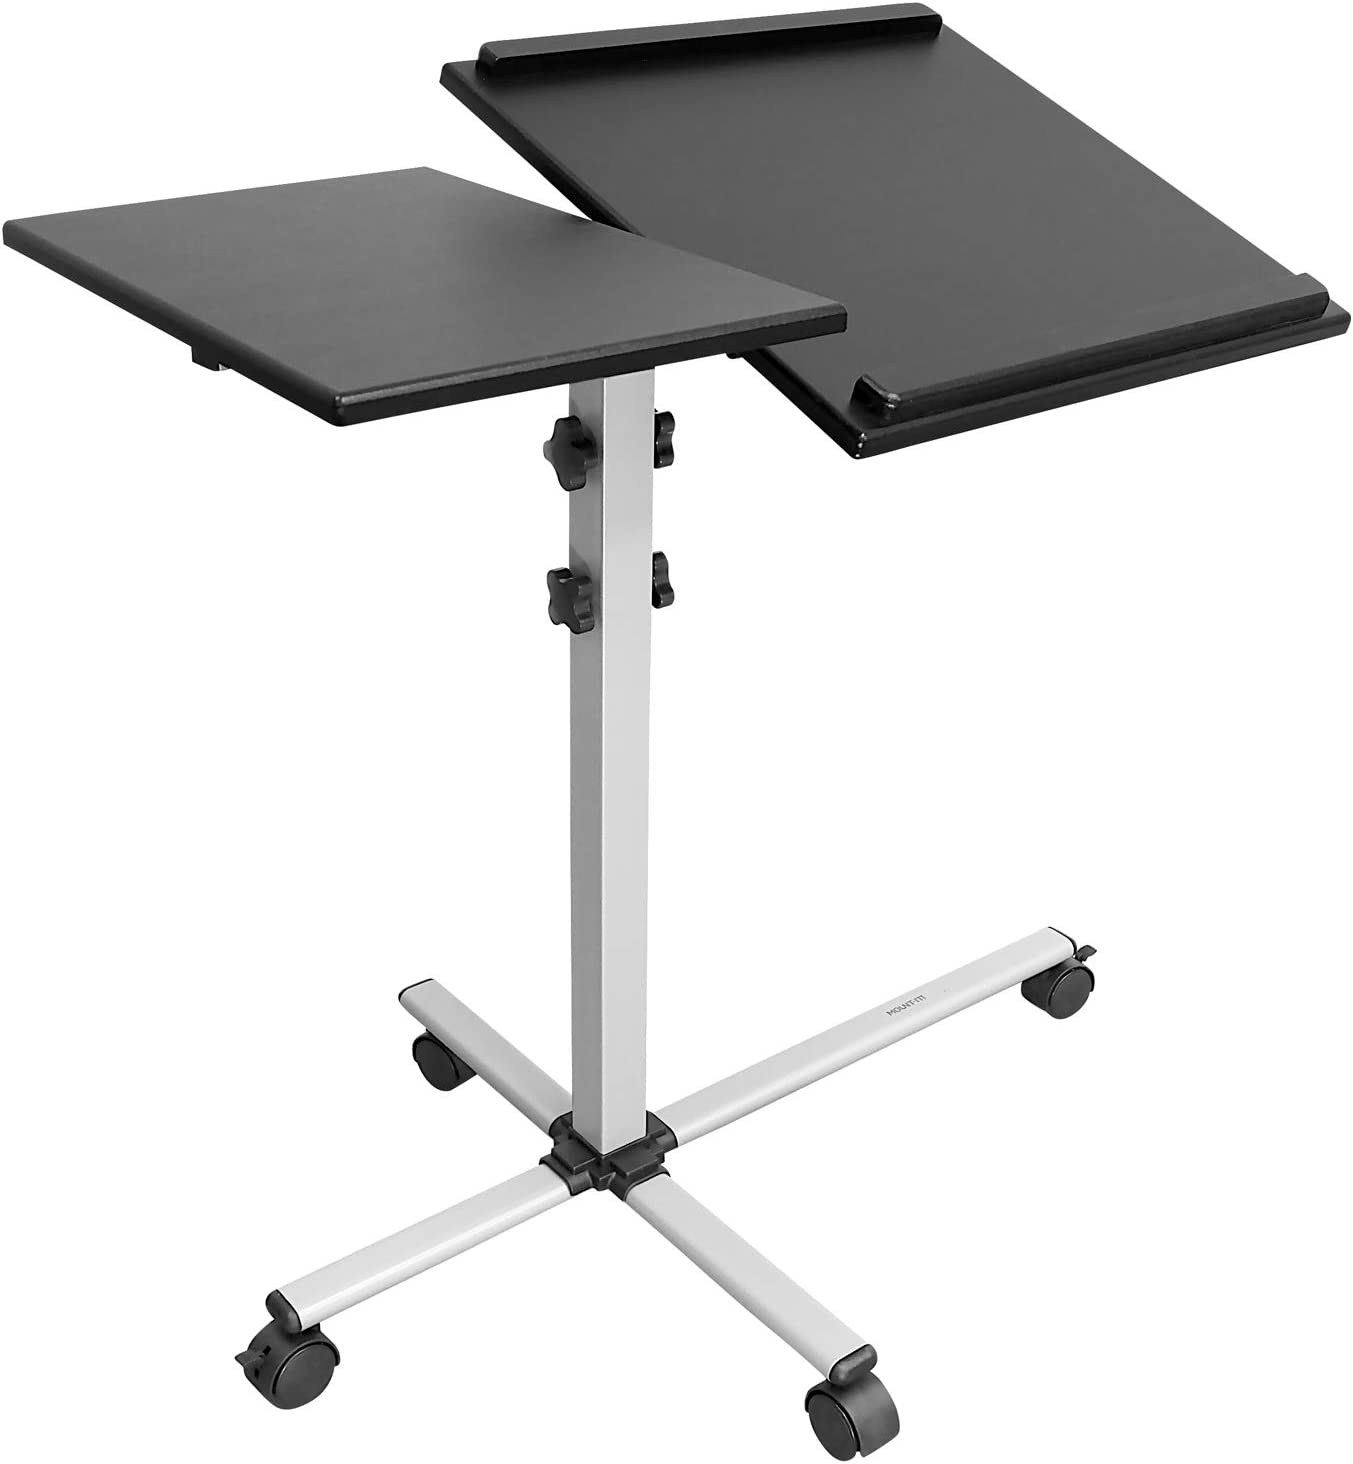 Mount-It Shipping included Rolling Laptop Tray and Adjusta Cart Long Beach Mall Projector Height